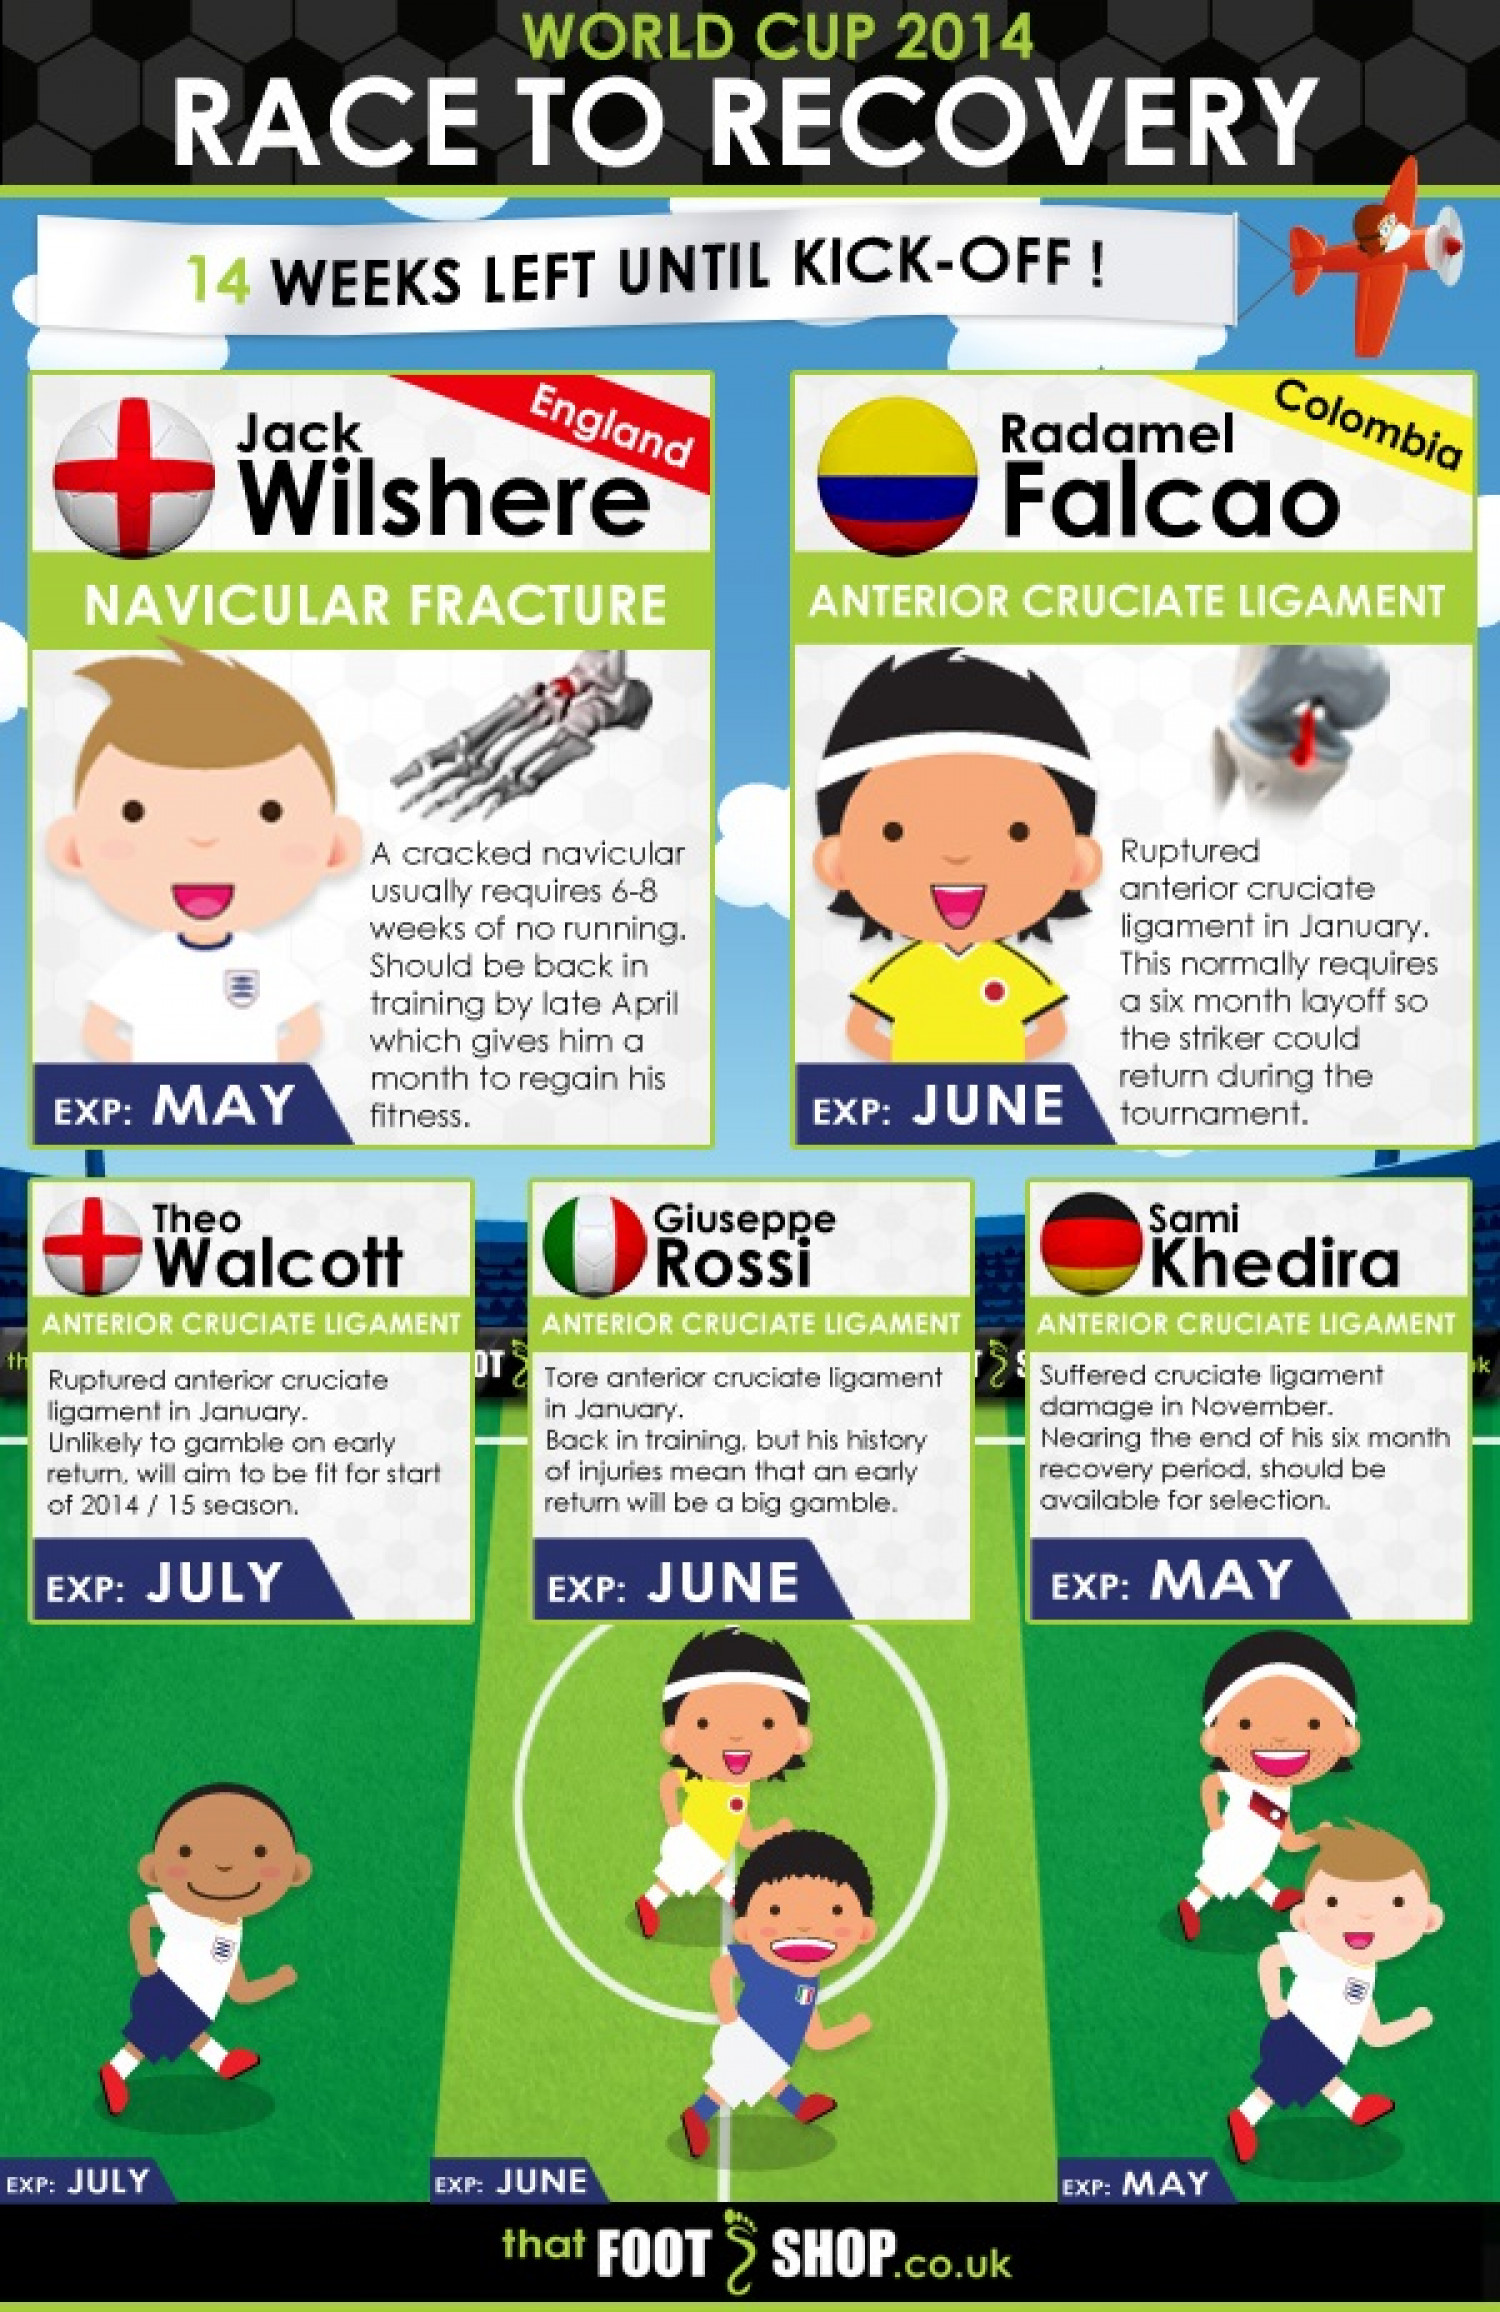 World Cup 2014: Race To Recovery Infographic